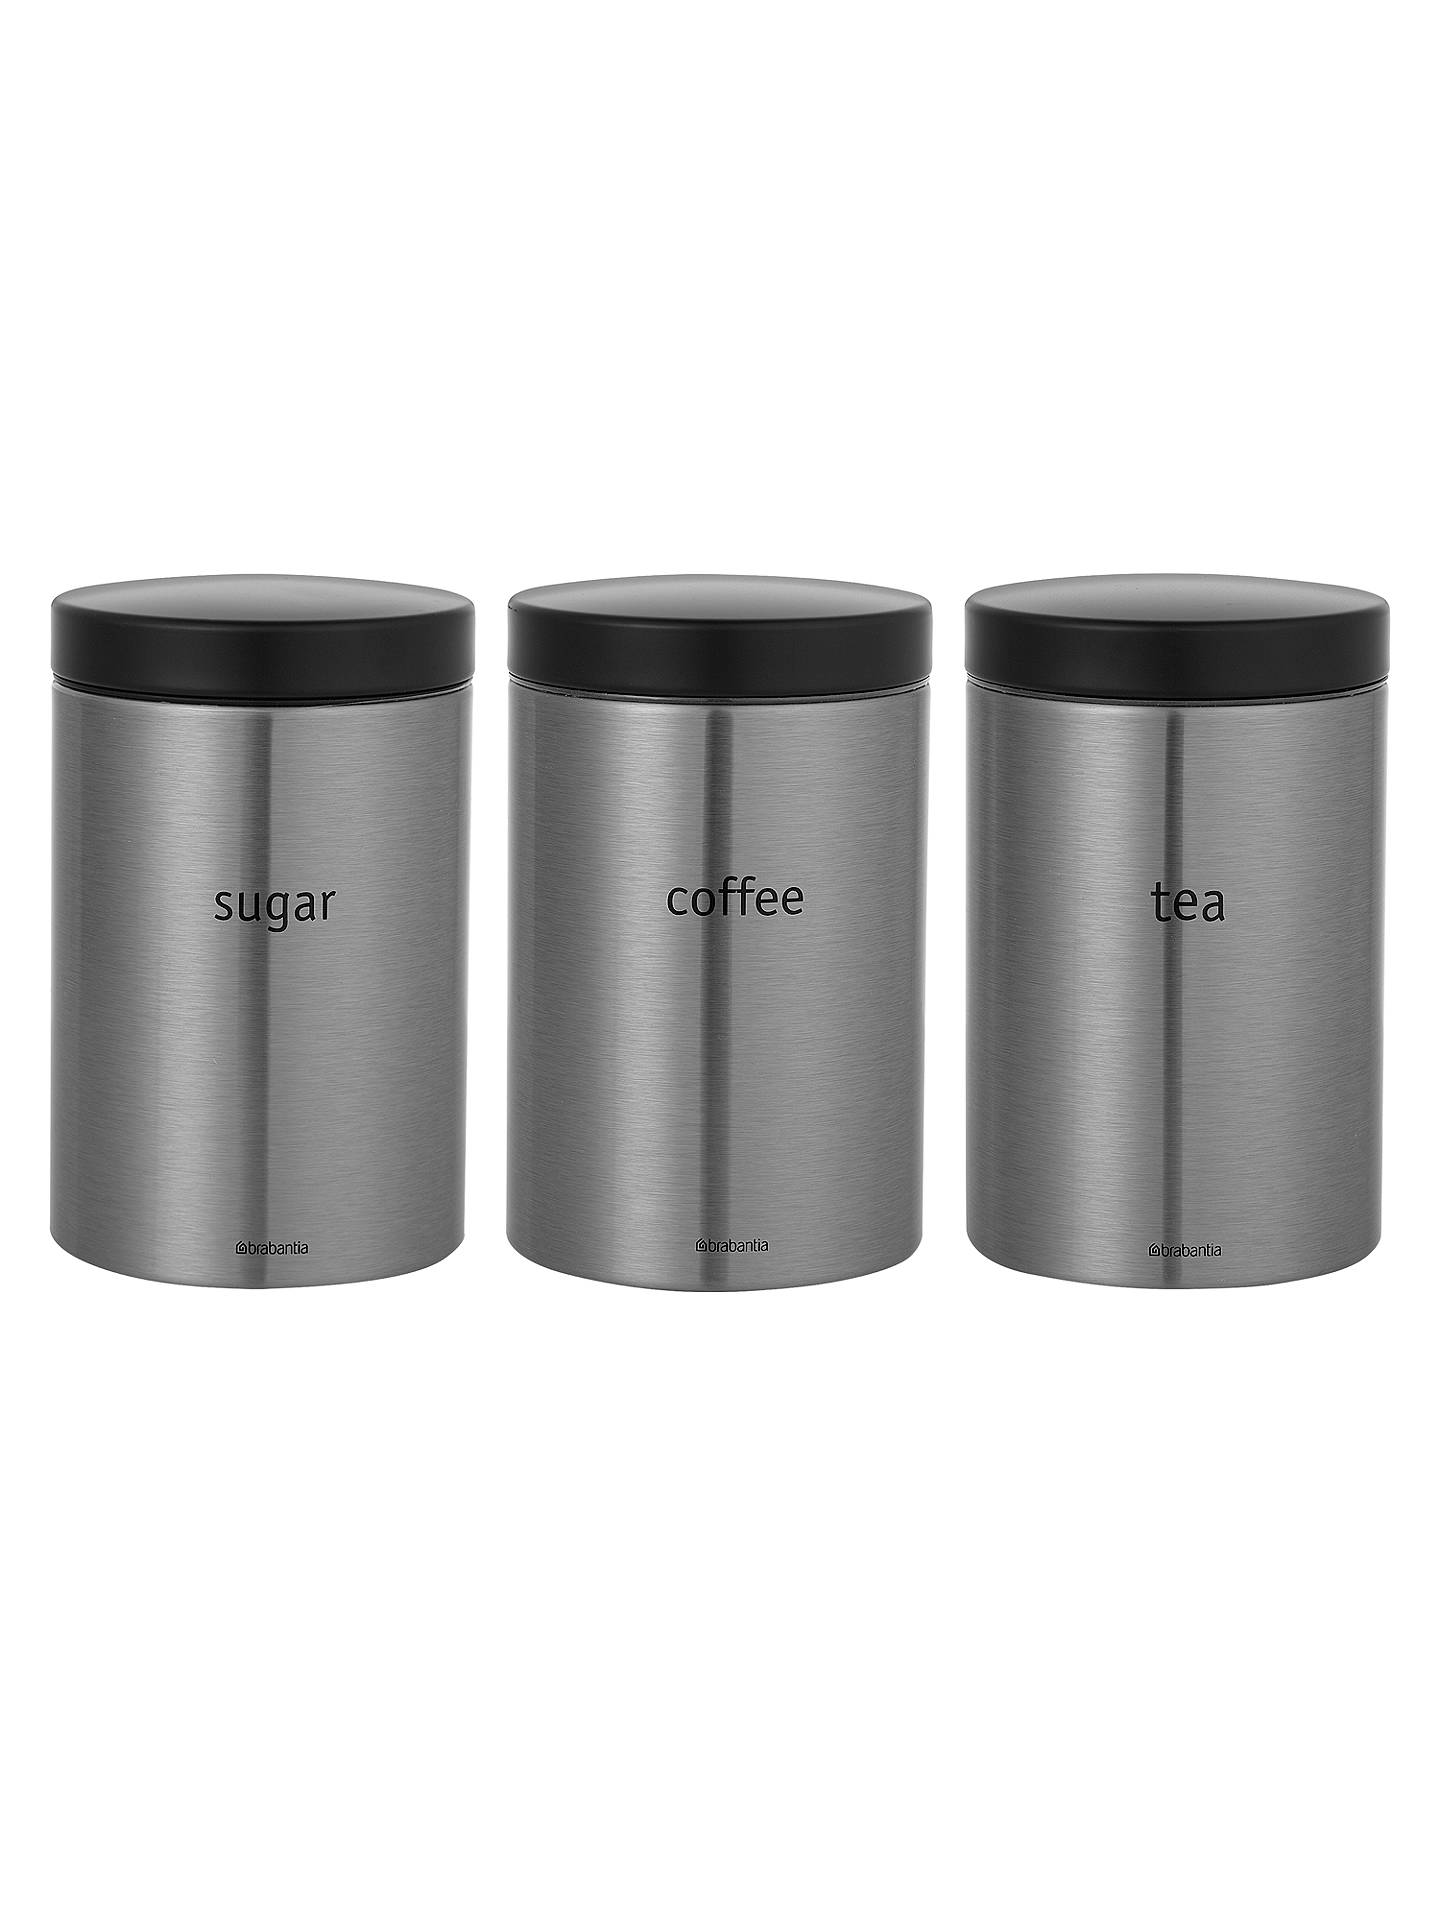 Buybrabantia tea coffee and sugar canisters matt stainless steel online at johnlewis com